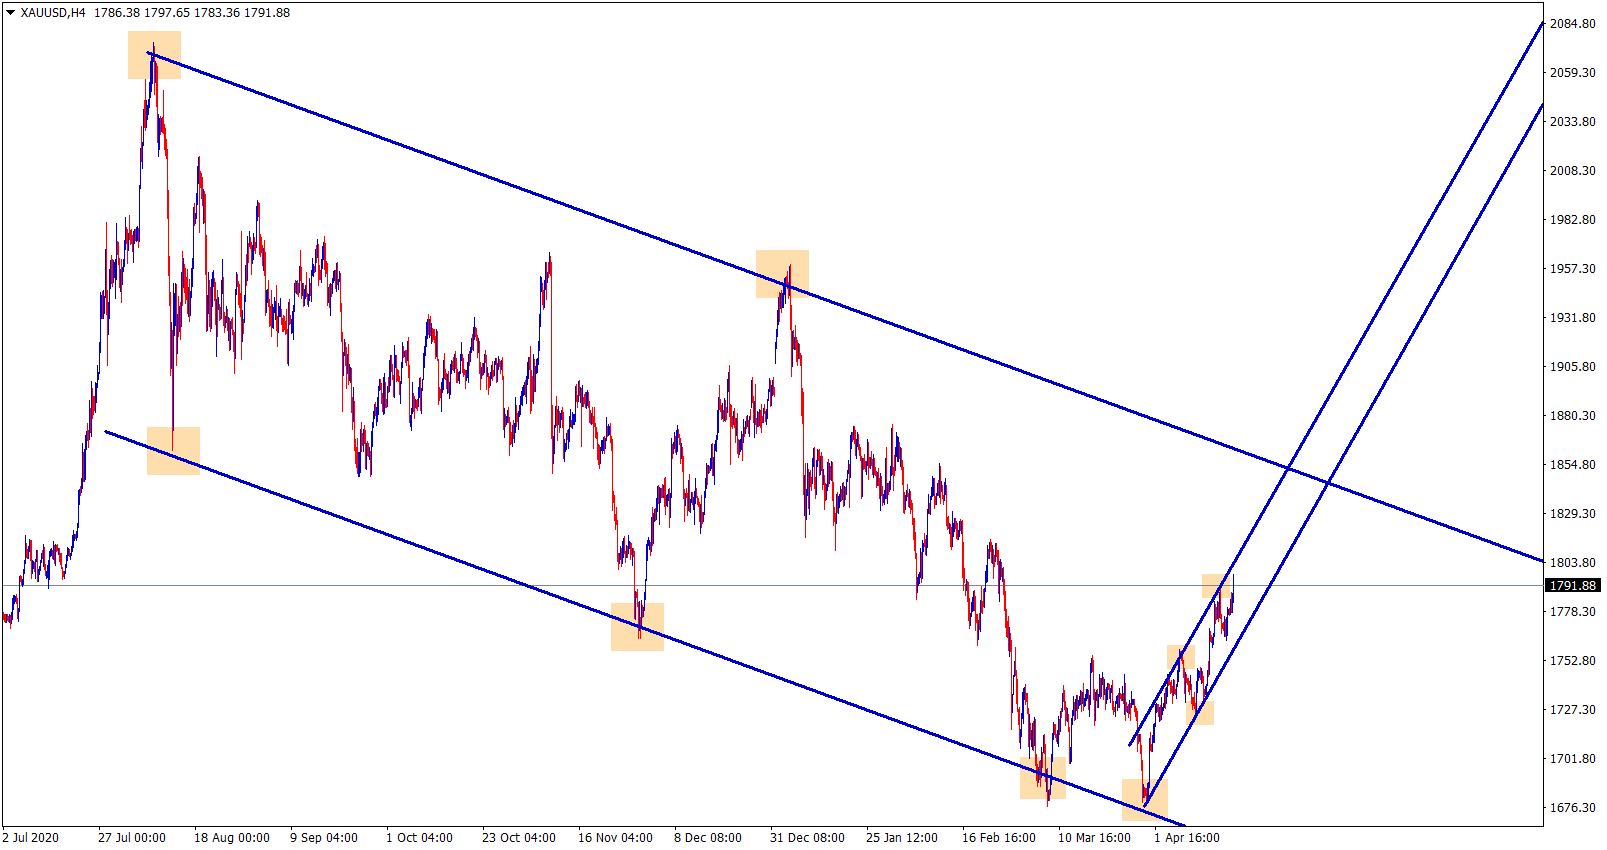 Gold is moving in a minor ascending channel now